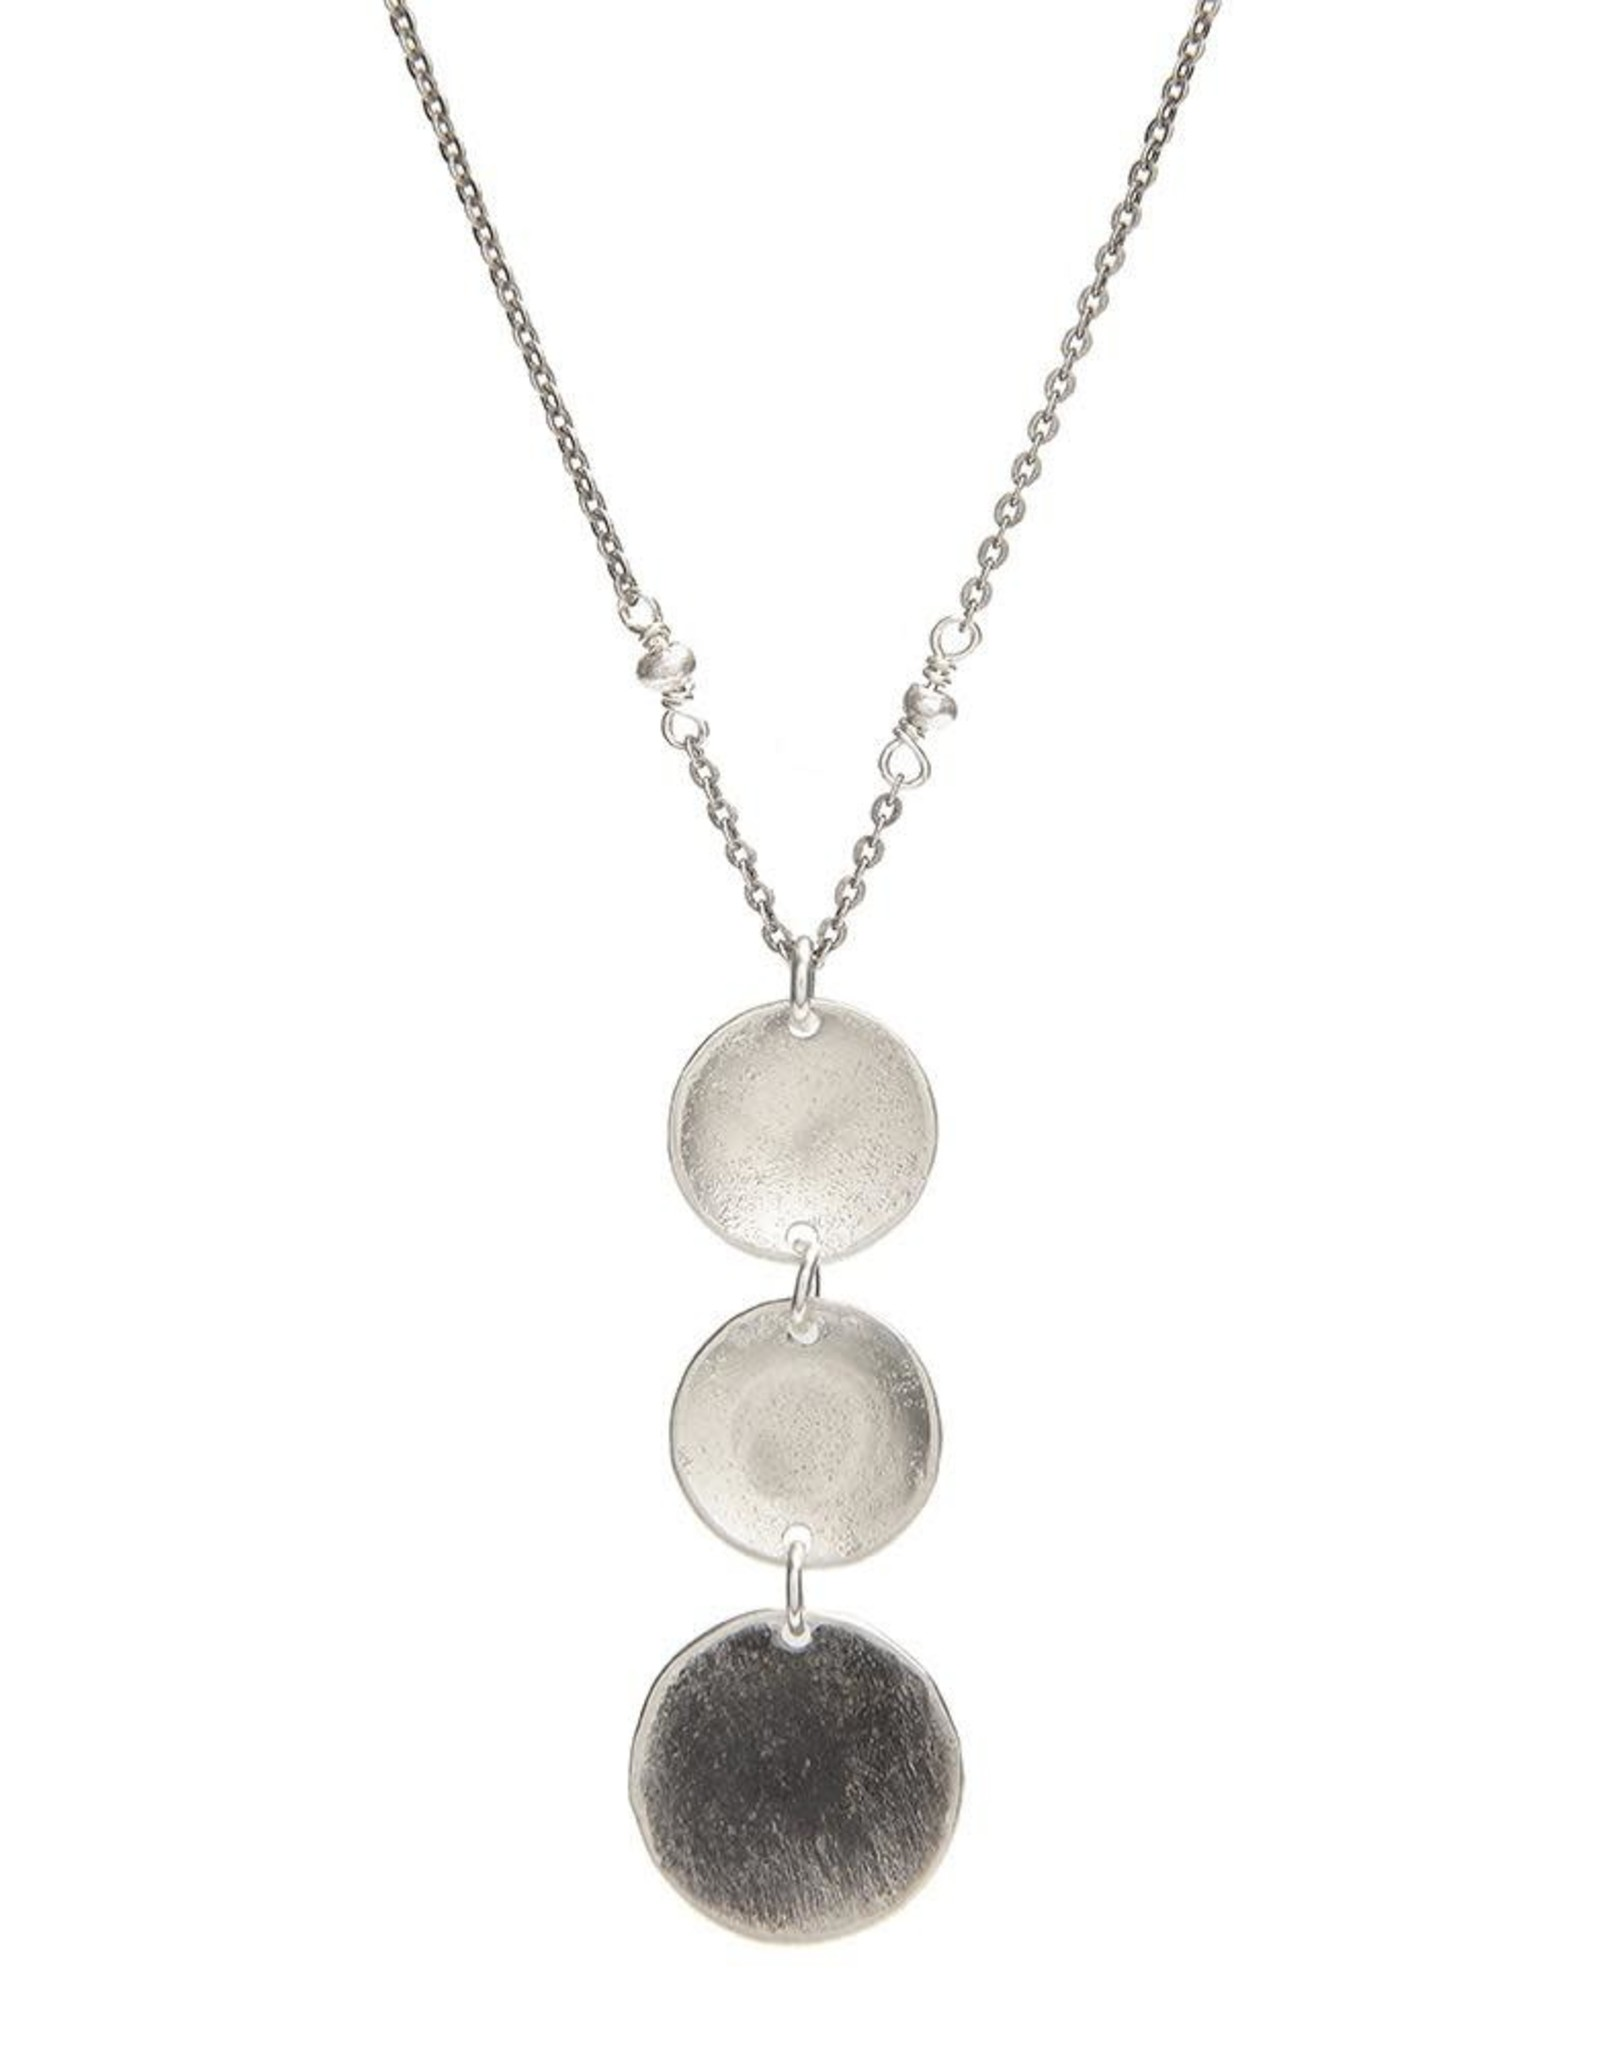 Handmade Textured Hammered Sterling Disc Necklace